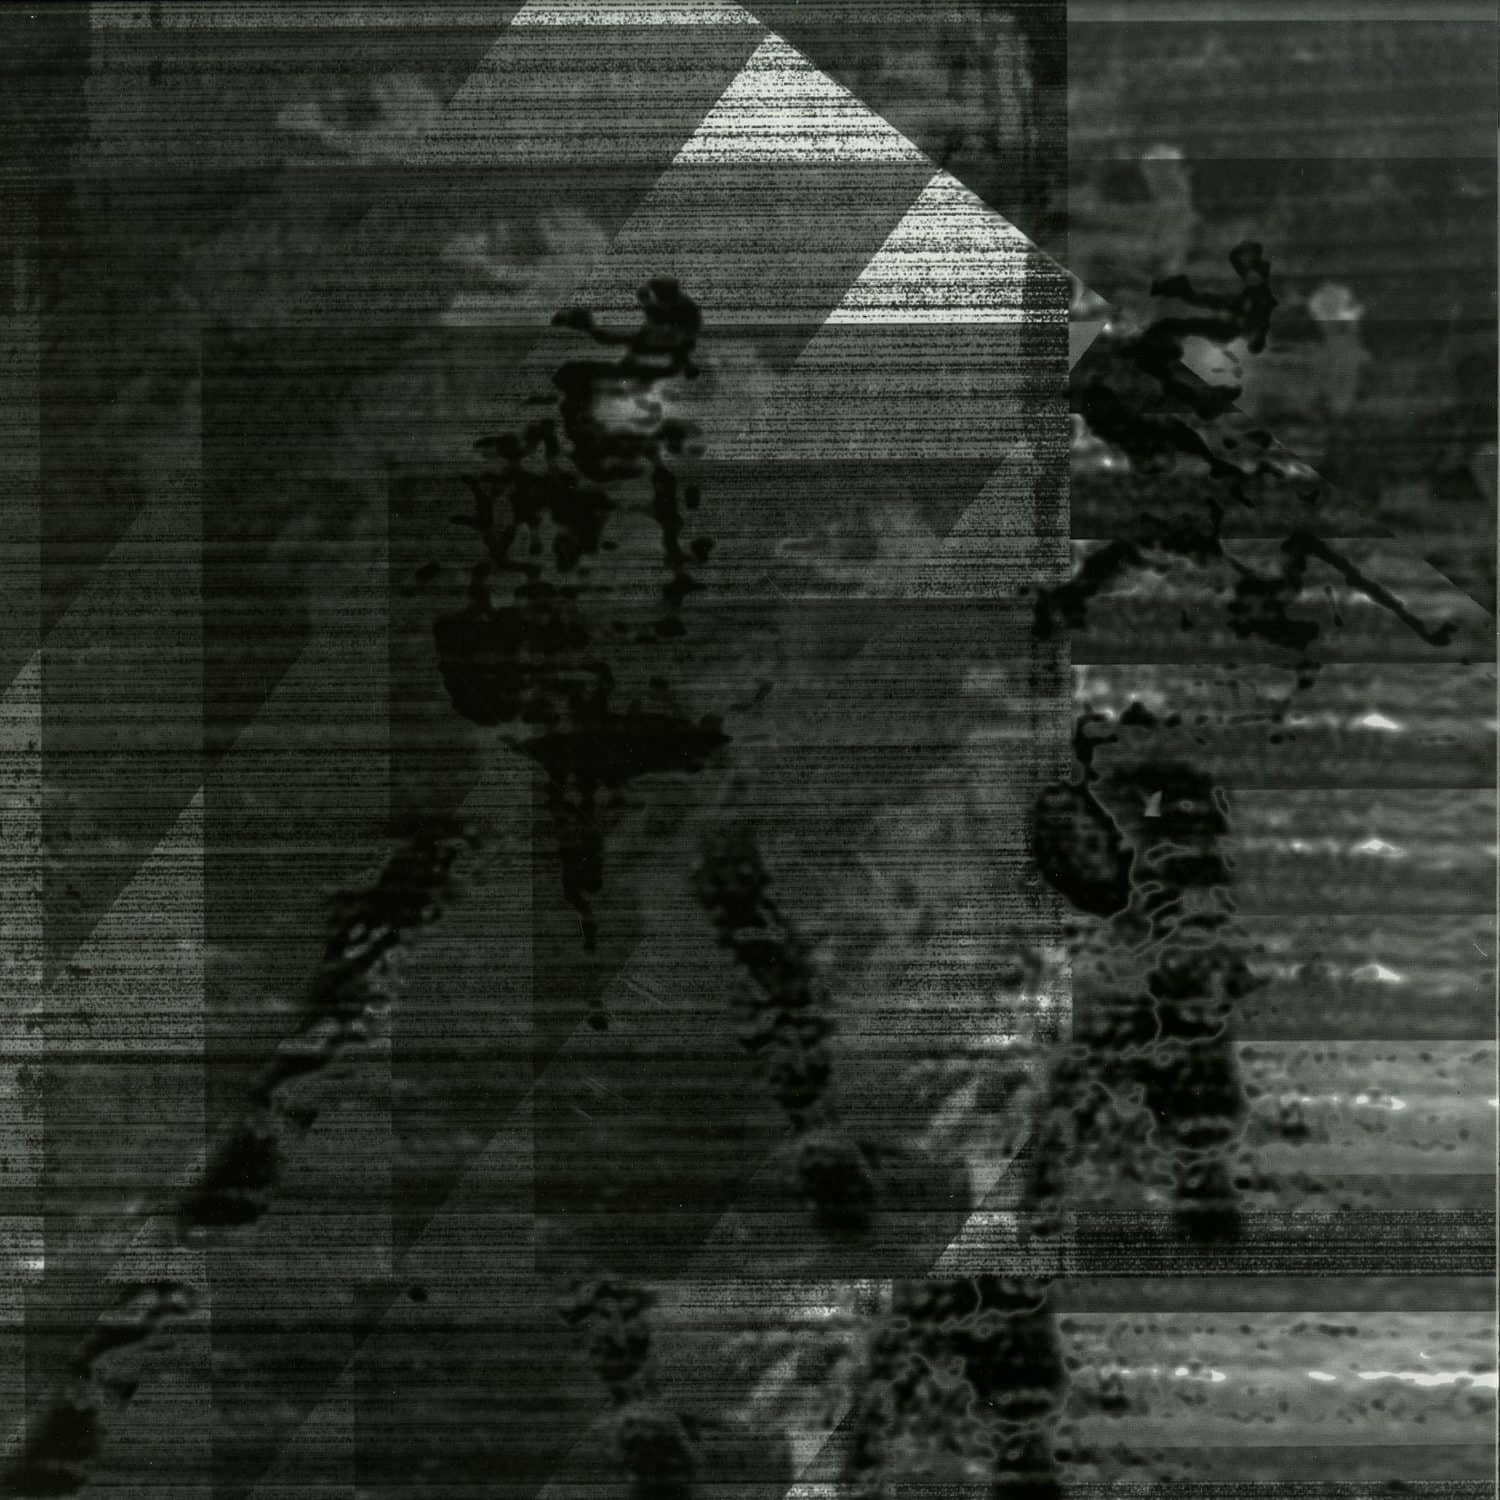 Naked Eye People / Barrow Boy / Bobby Durst / Mike Storm - STEALTH MISSION VOL 2